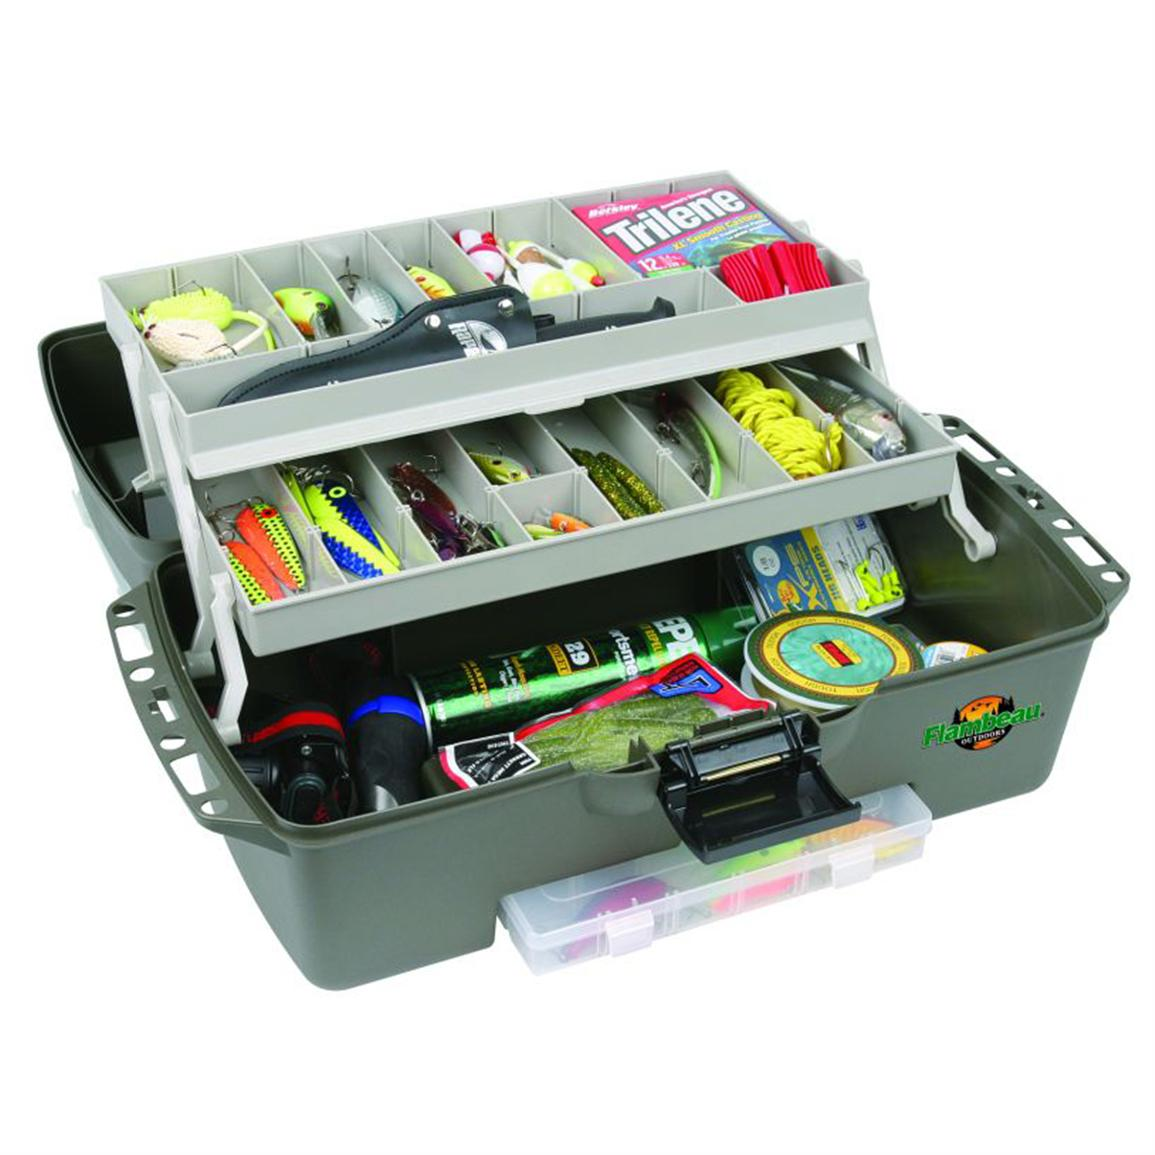 Opens up smoothly to reveal up to 36 compartments for your lures, line and tools